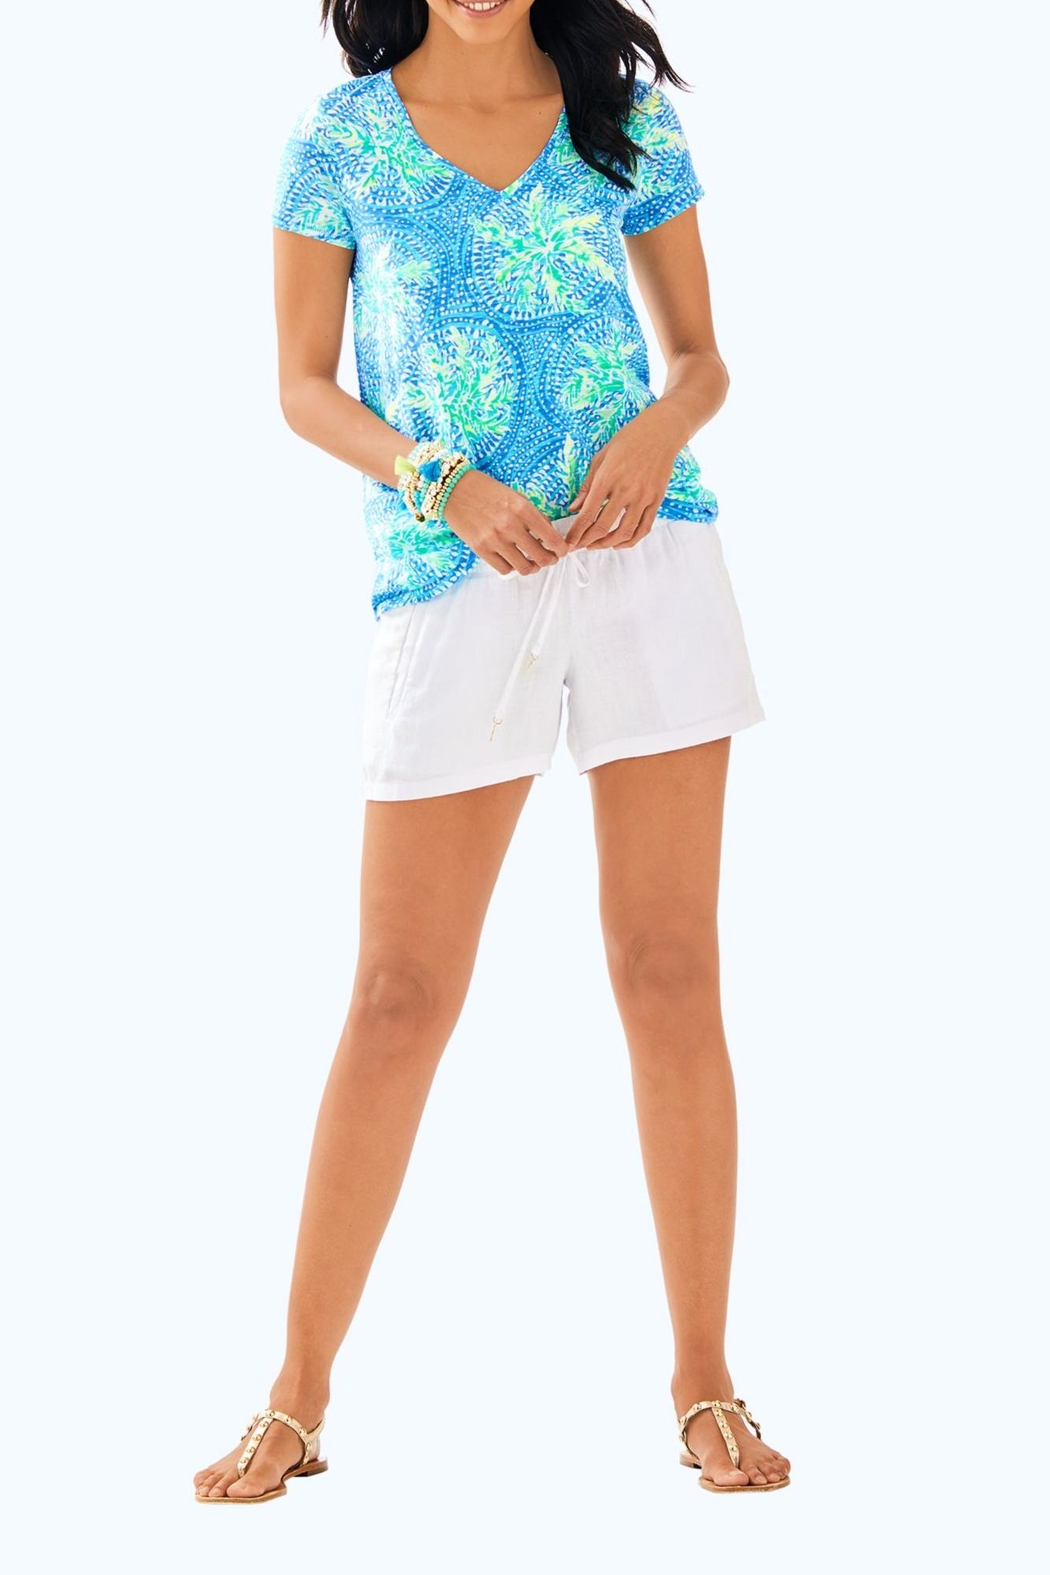 Lilly Pulitzer Etta V-Neck Top - Side Cropped Image